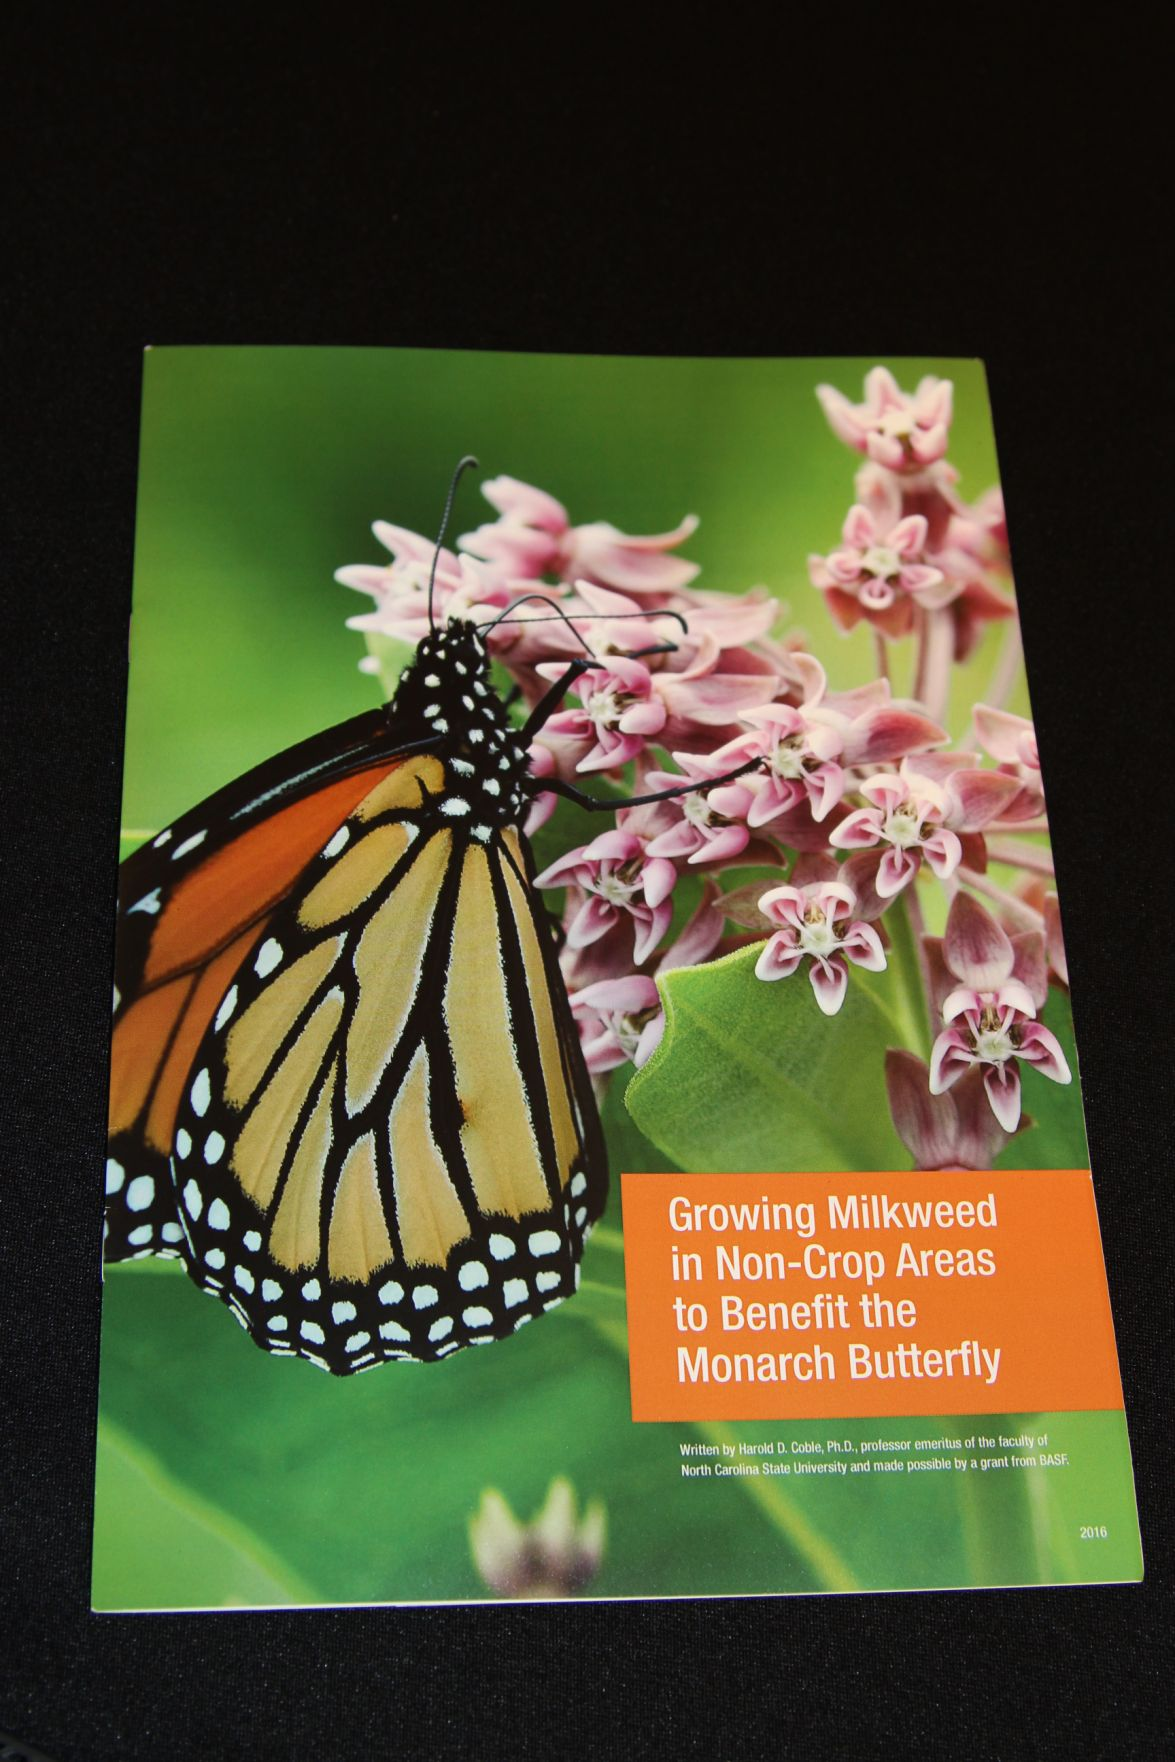 Basf Introduces Living Acres Initiative For Monarch Butterflies By